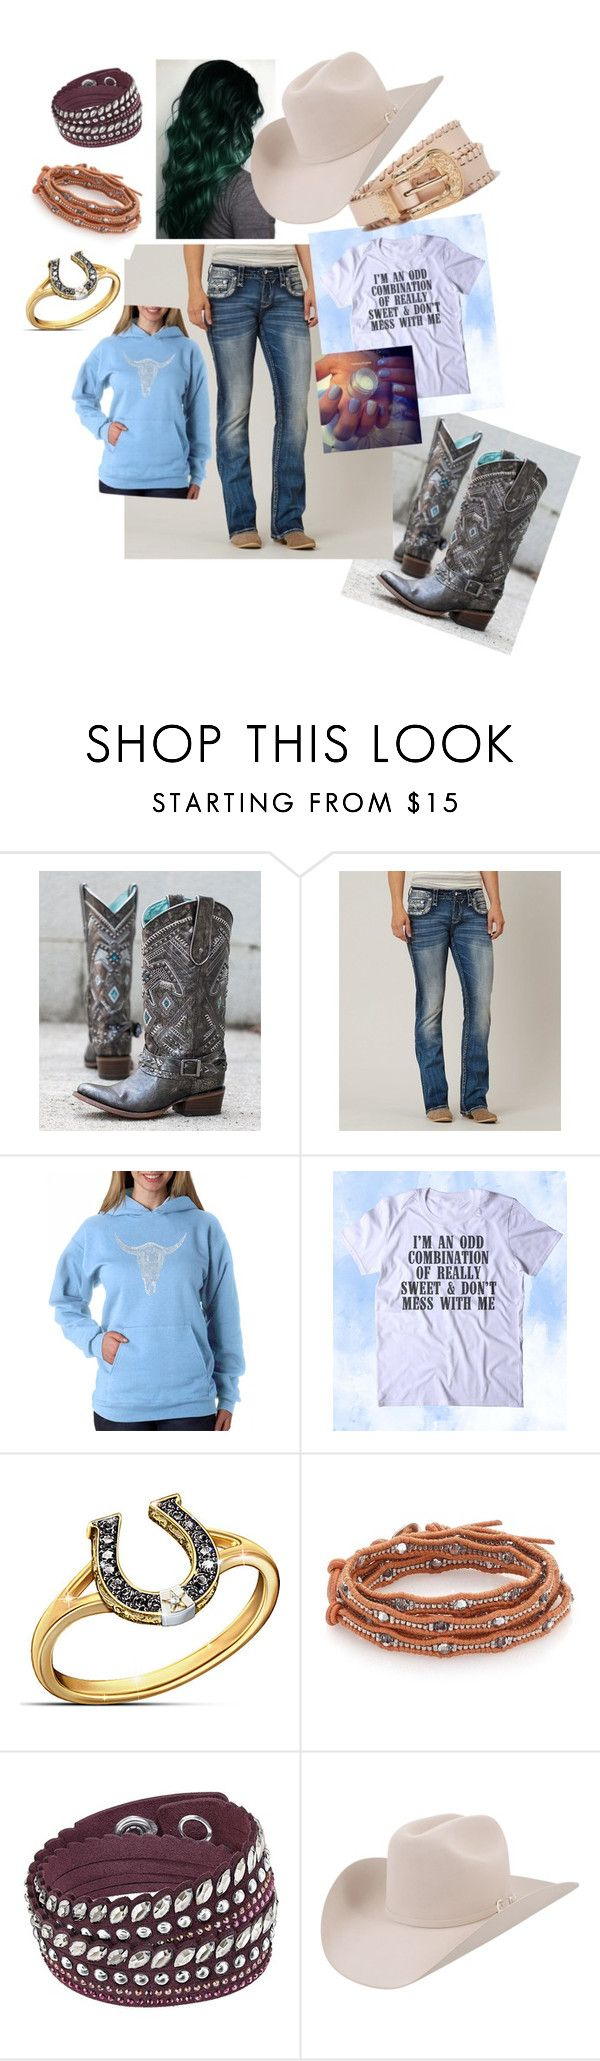 """""""cowgirl western outfit"""" by heidilott5 ❤ liked on Polyvore featuring Corral, Rock Revival, Los Angeles Pop Art, The Bradford Exchange, Chan Luu, Swarovski, Stetson, River Island and plus size clothing"""